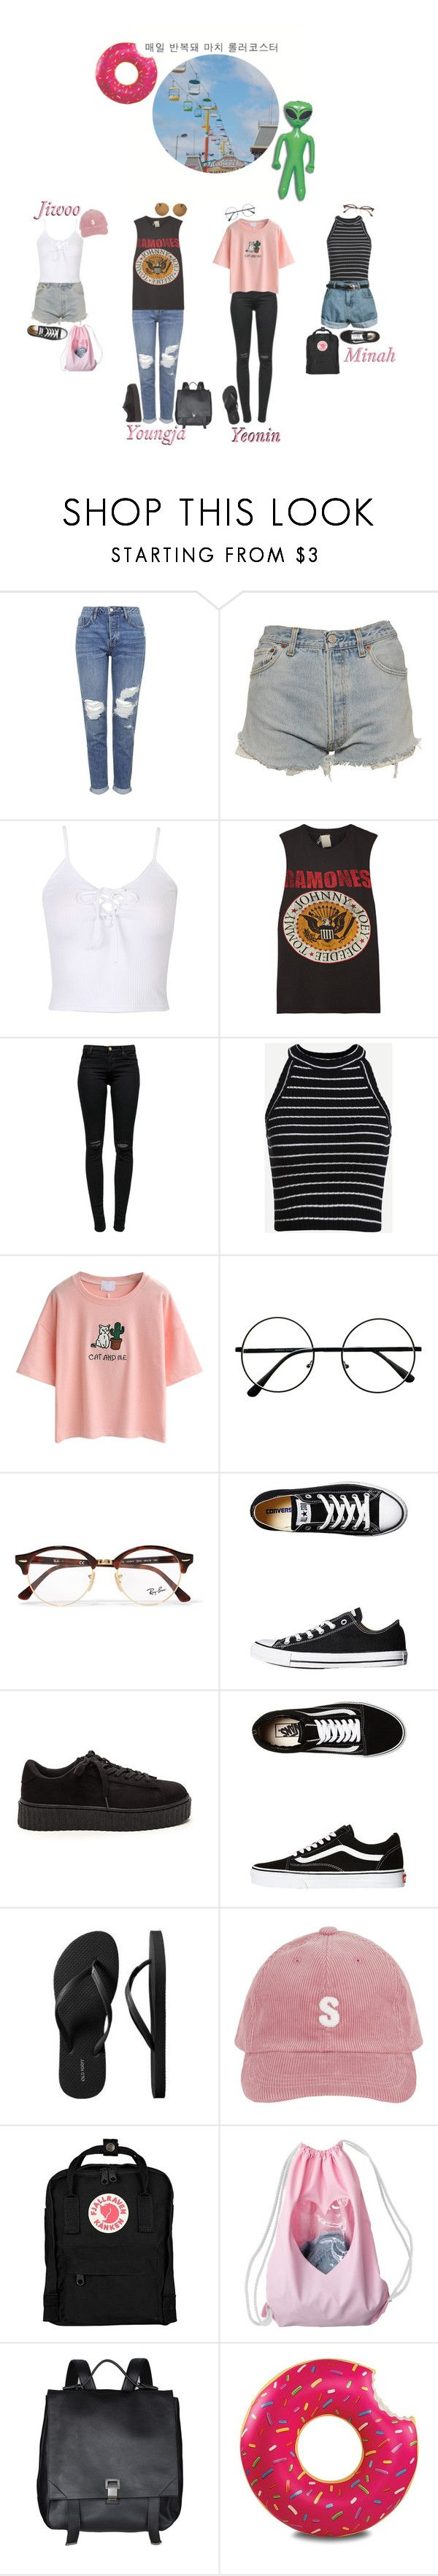 """Santa Cruz Boardwalk: 4U"" by real4u ❤ liked on Polyvore featuring Topshop, Levi's, WithChic, MadeWorn, J Brand, Retrò, Ray-Ban, Converse, Vans and Old Navy"